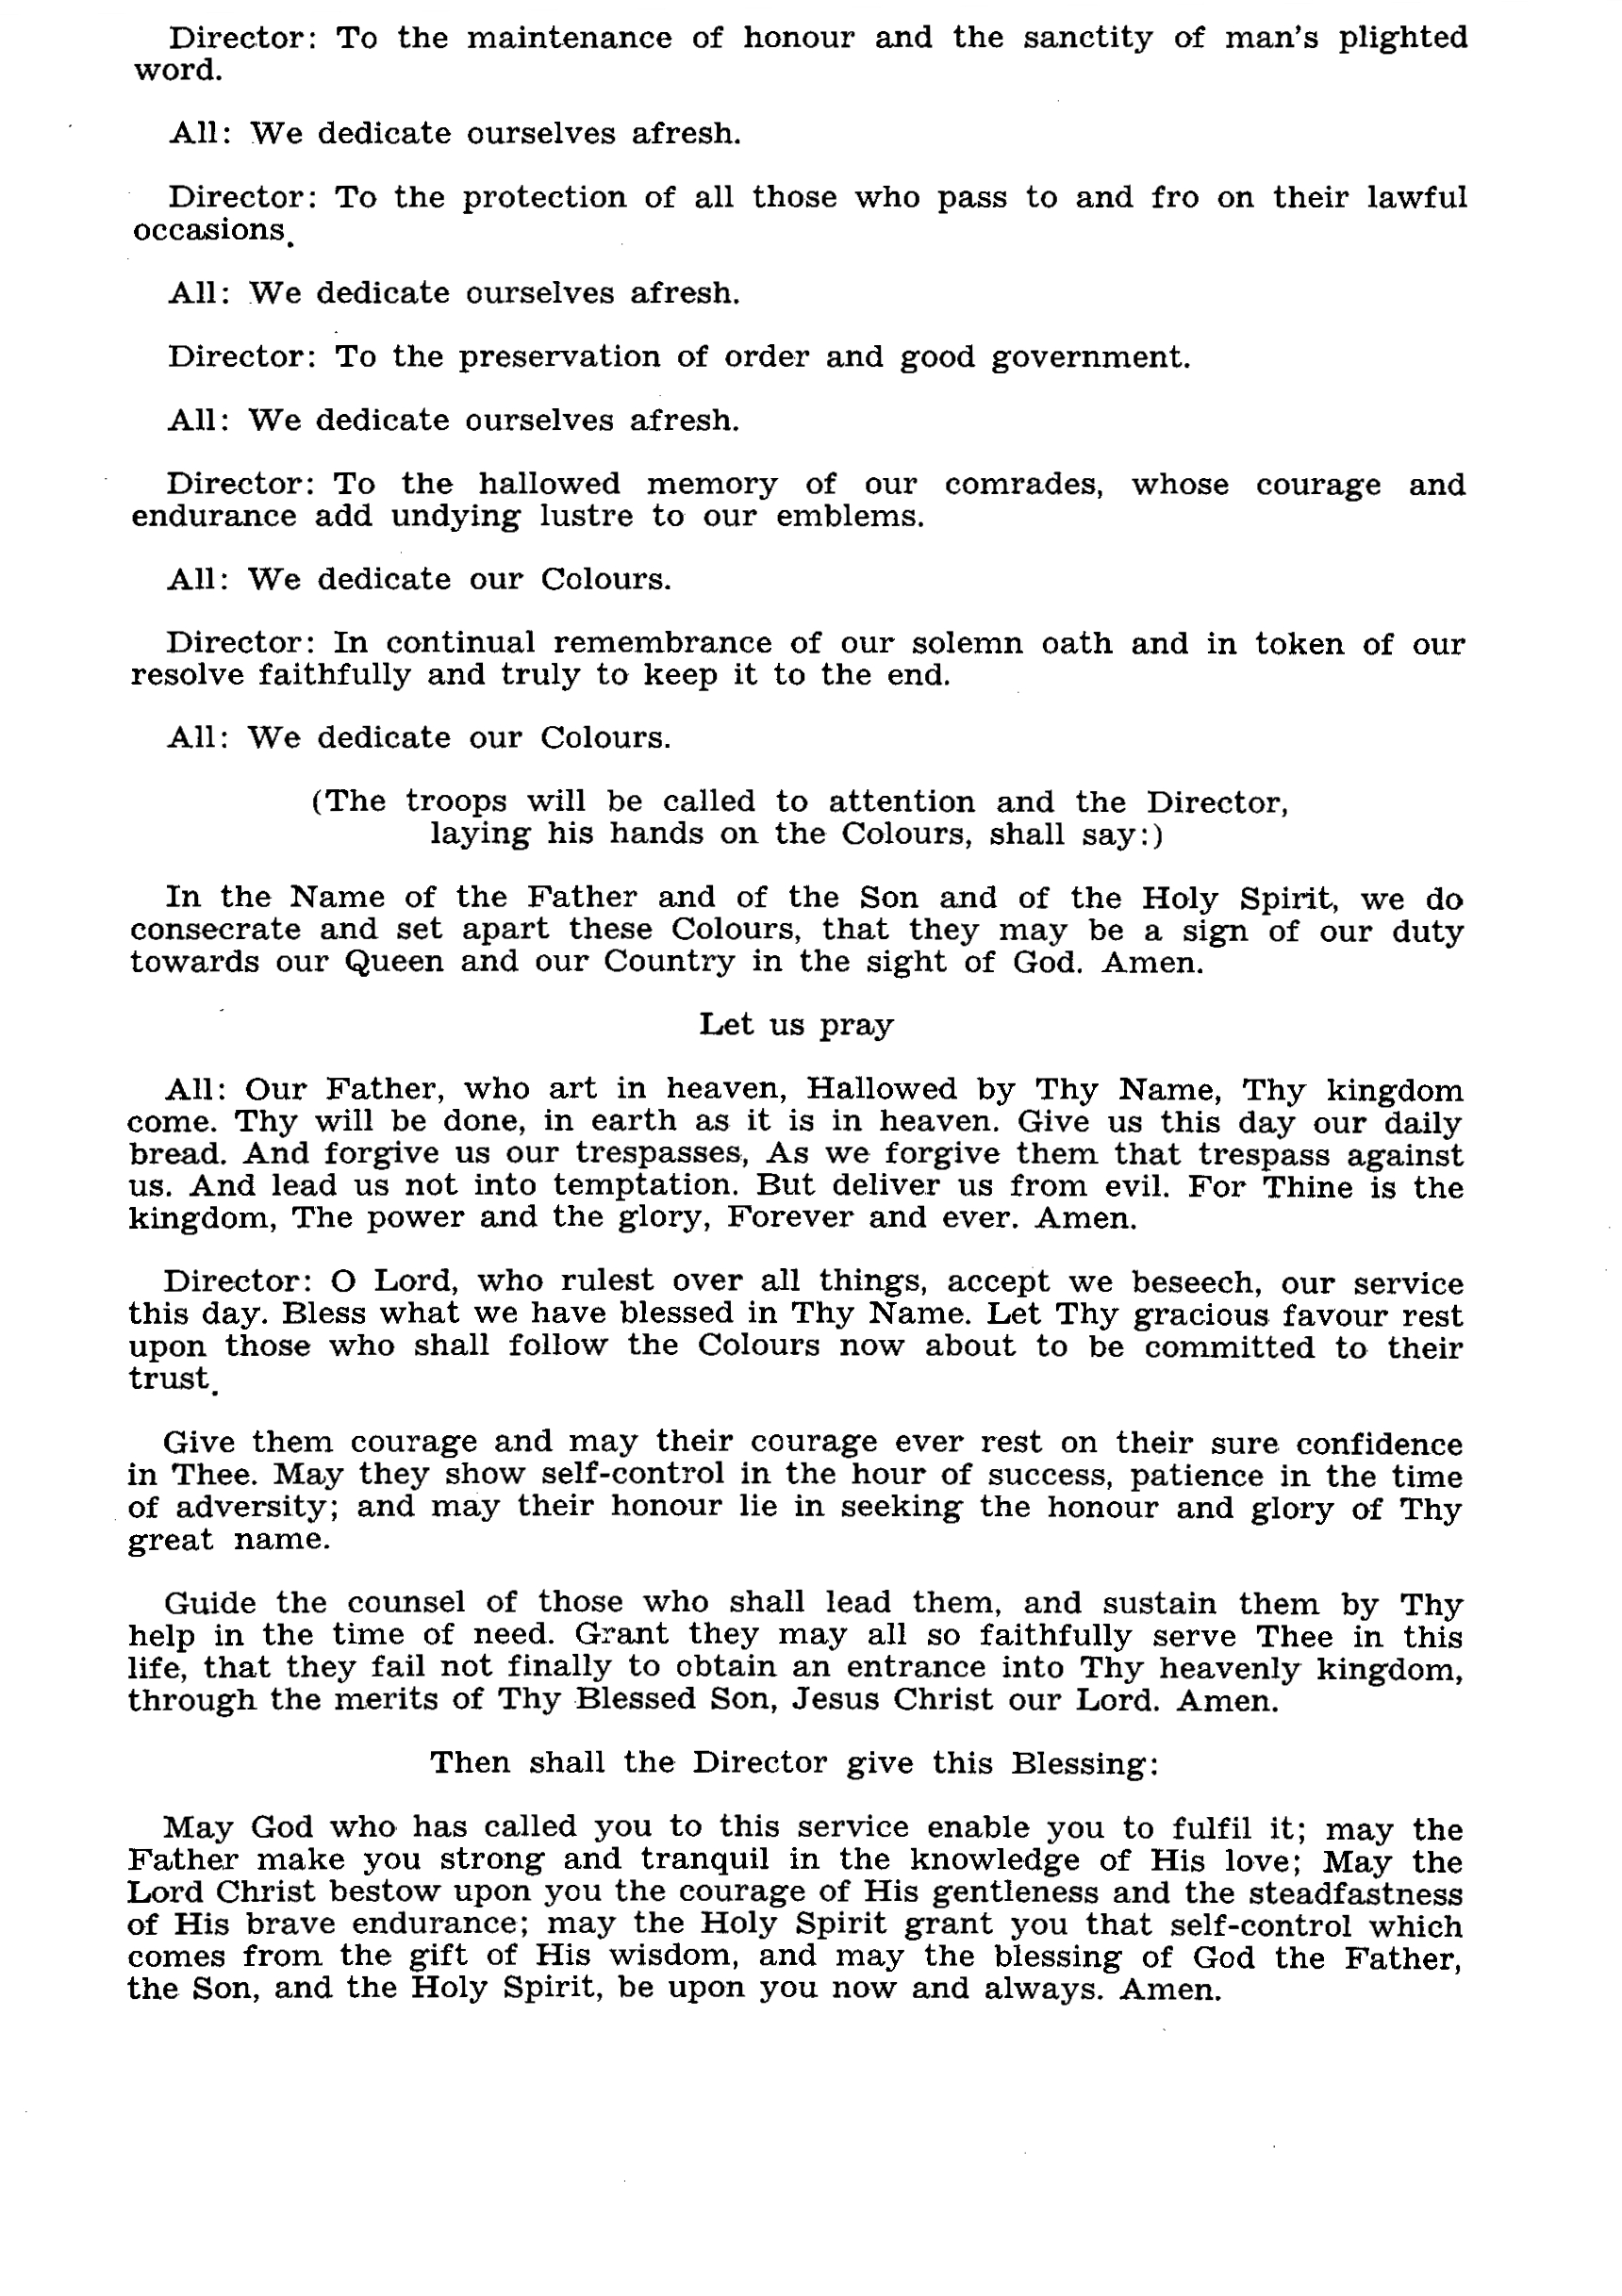 37_Cdn Gds-Presentation of Colours by Vincent Massey-05 Oct-1957-P5